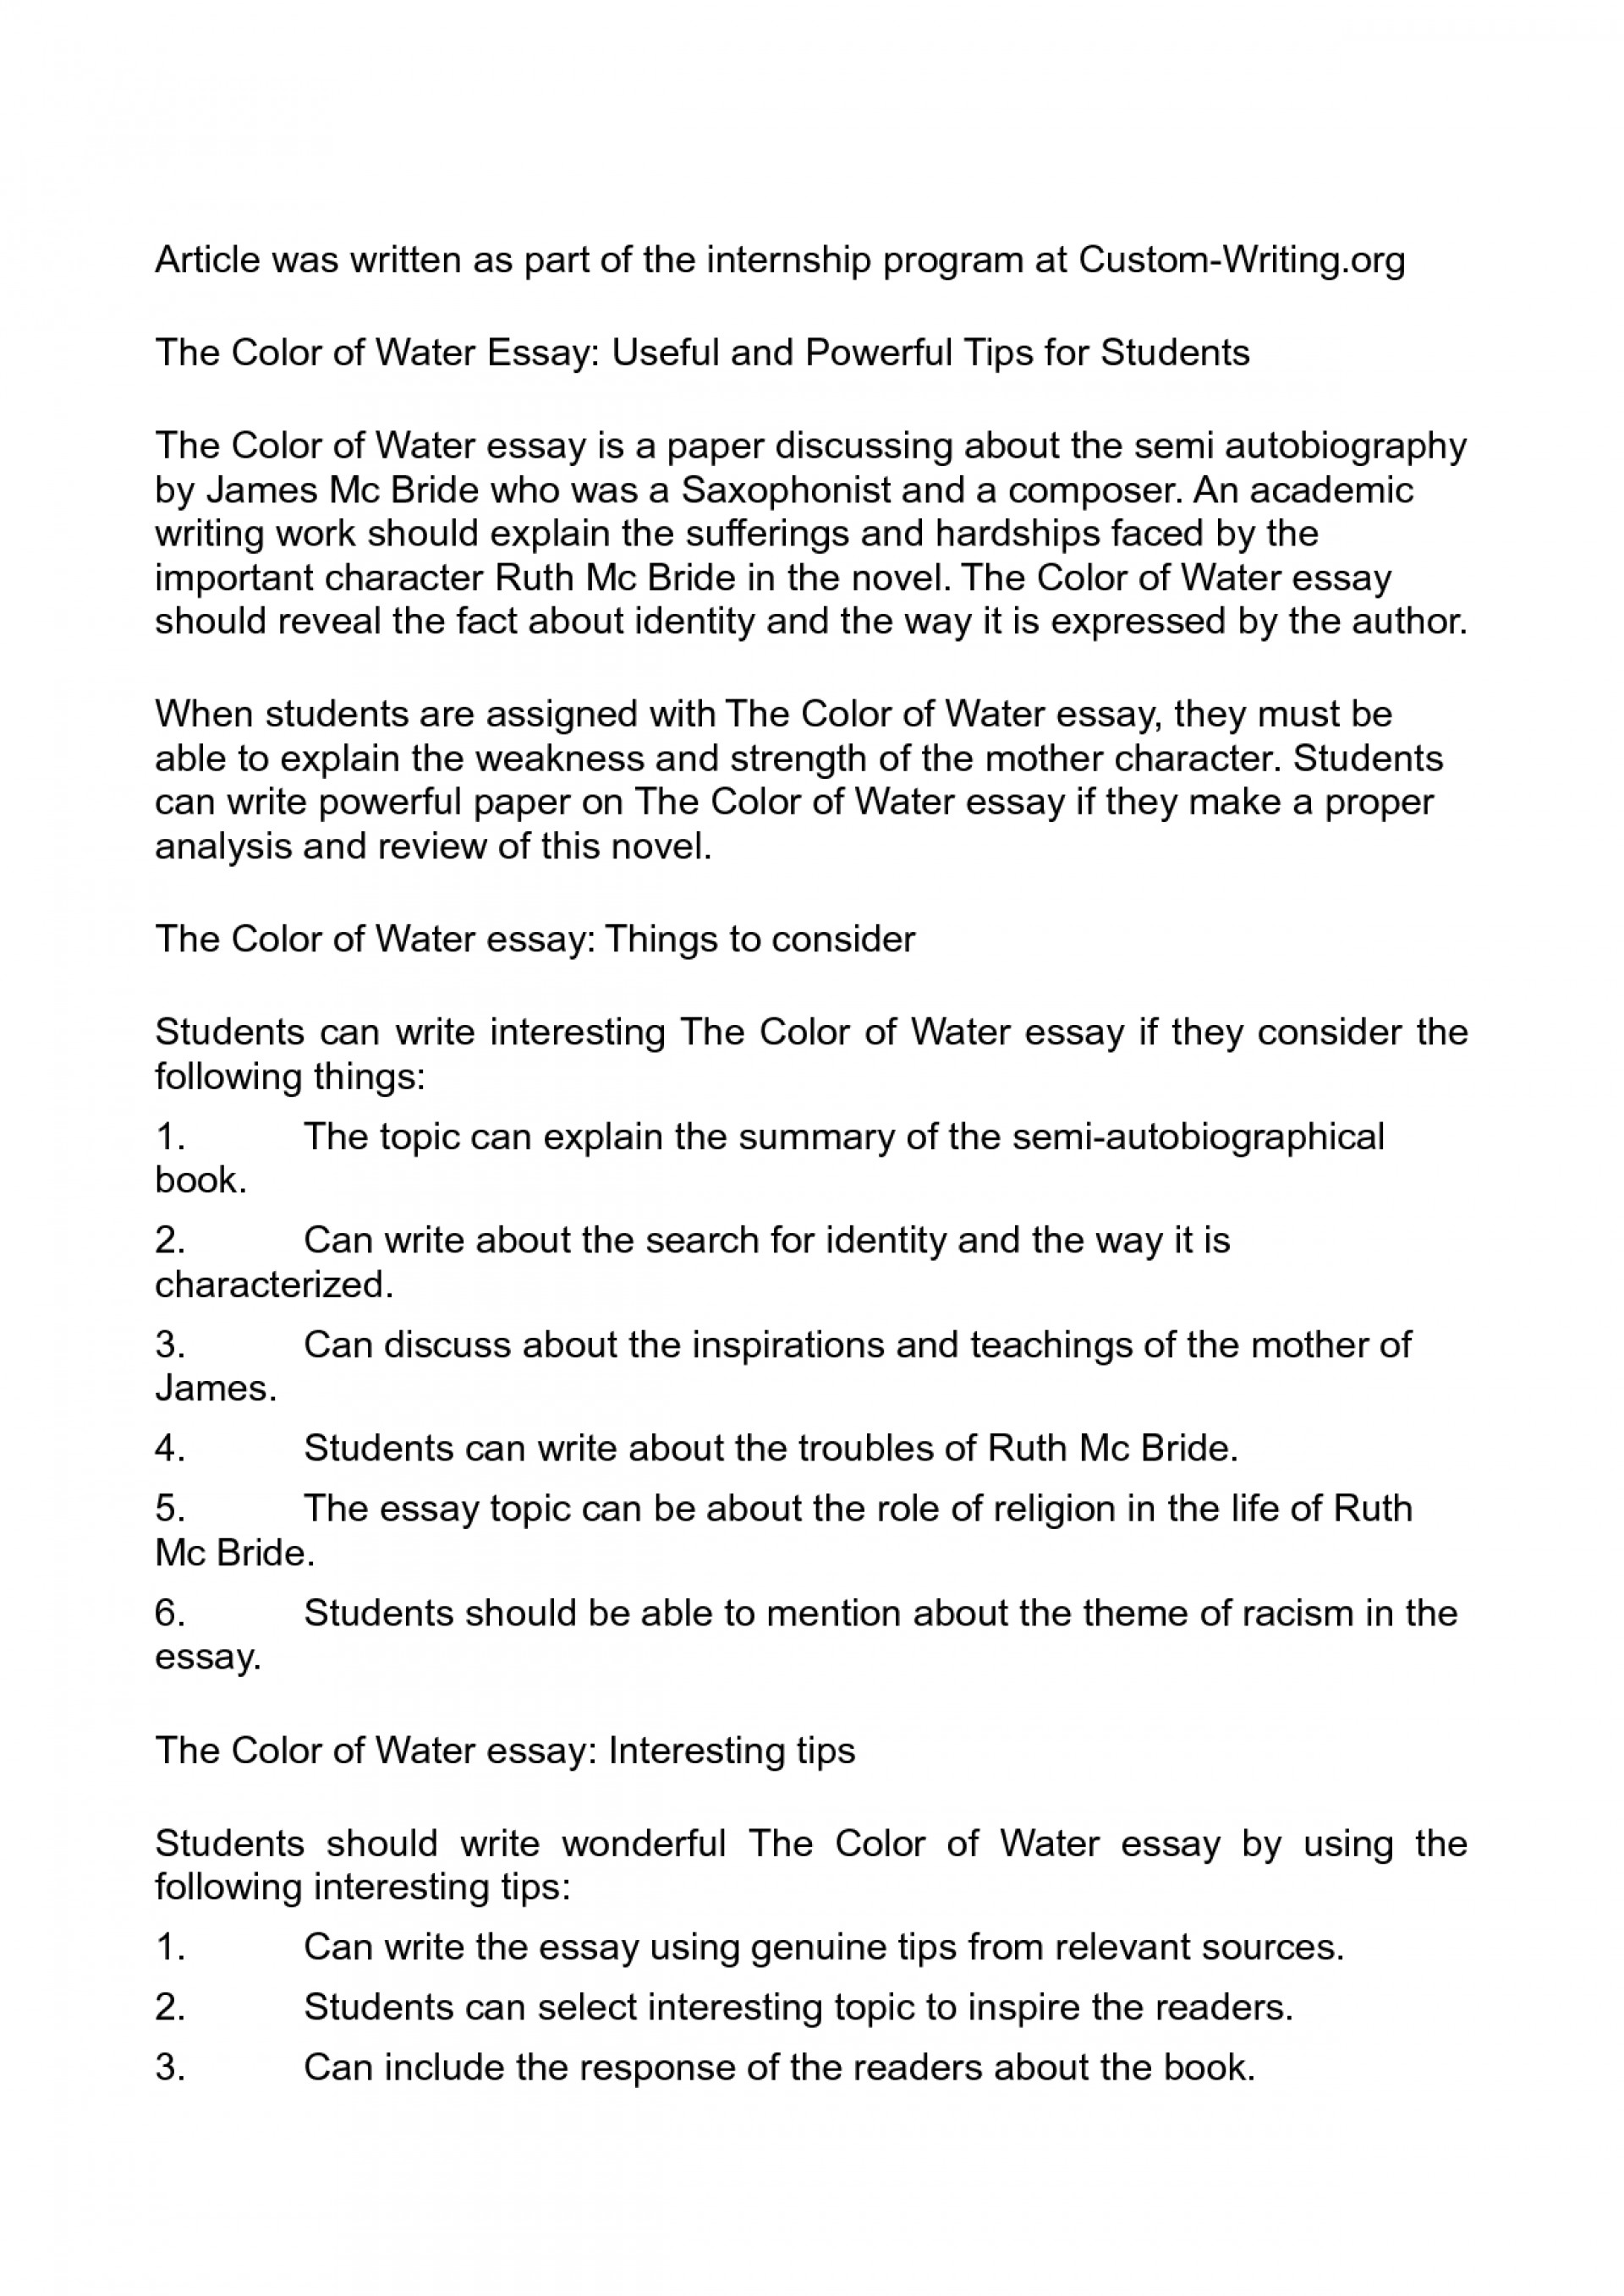 003 Essay About Water Pollution Of For Students Alt6b Incredible In Hindi Pdf Download Odia Kannada 1920